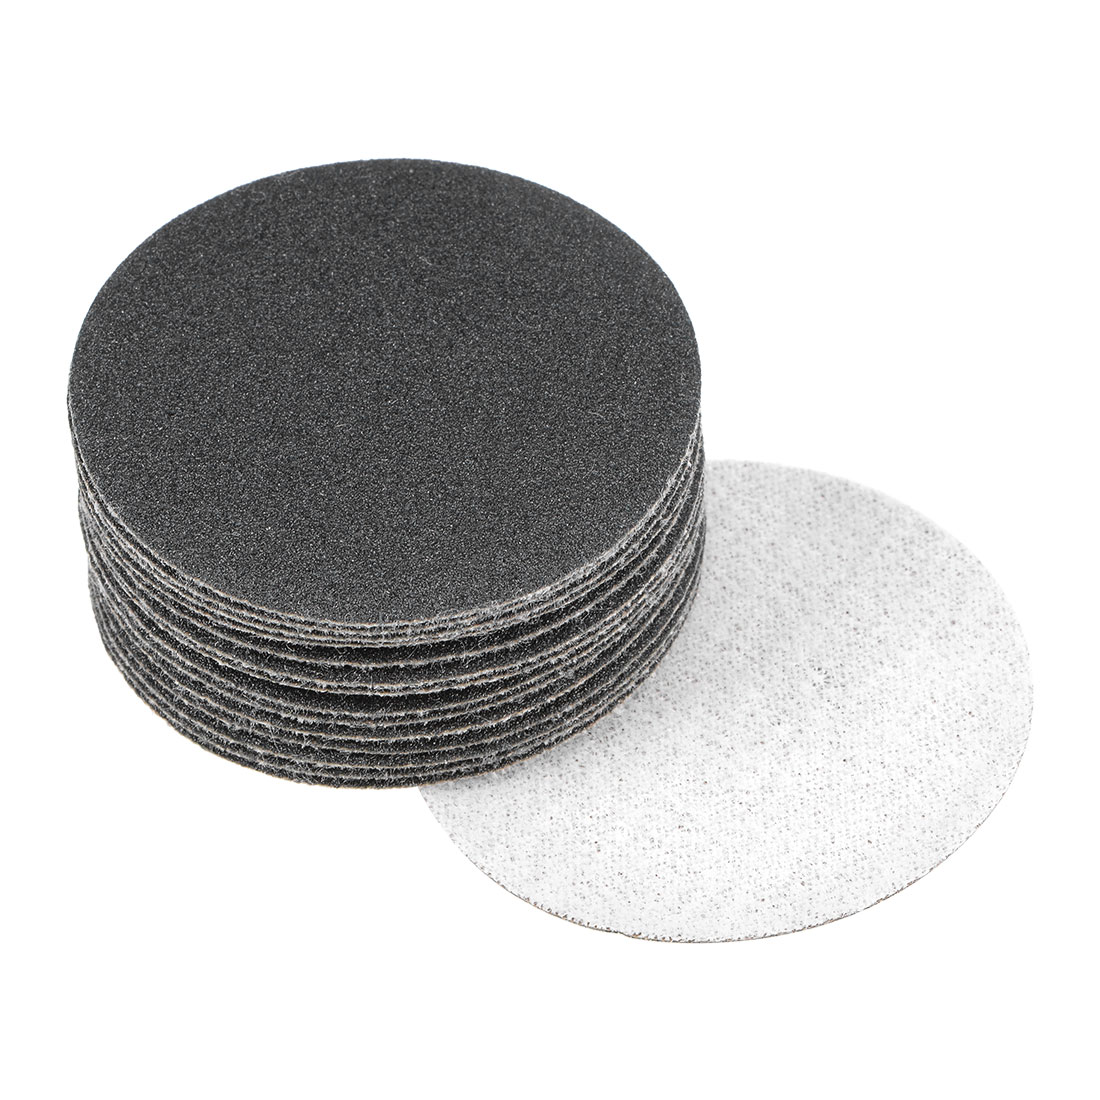 2 inch Wet Dry Discs 150 Grit Hook and Loop Sanding Disc Silicon Carbide 15pcs